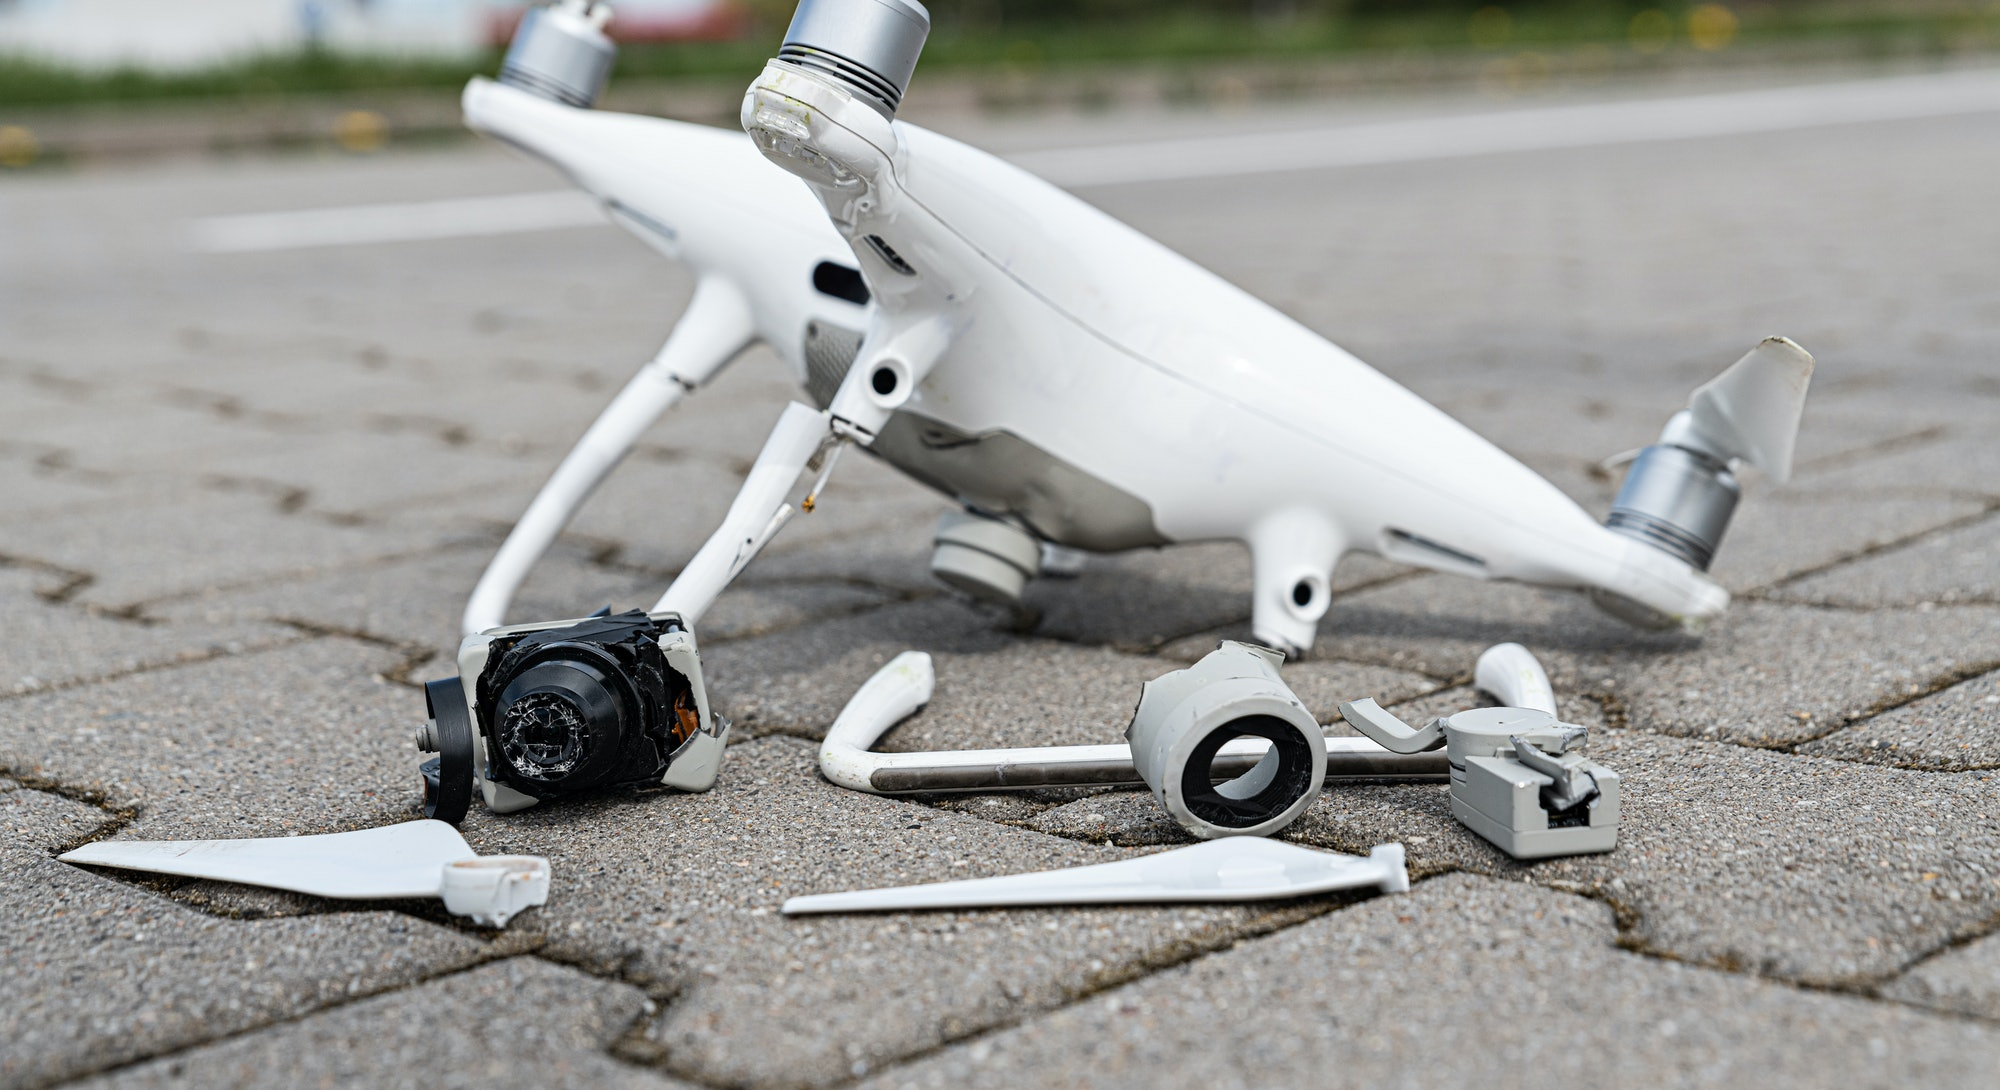 Crashed modern drone and camera after drone accident